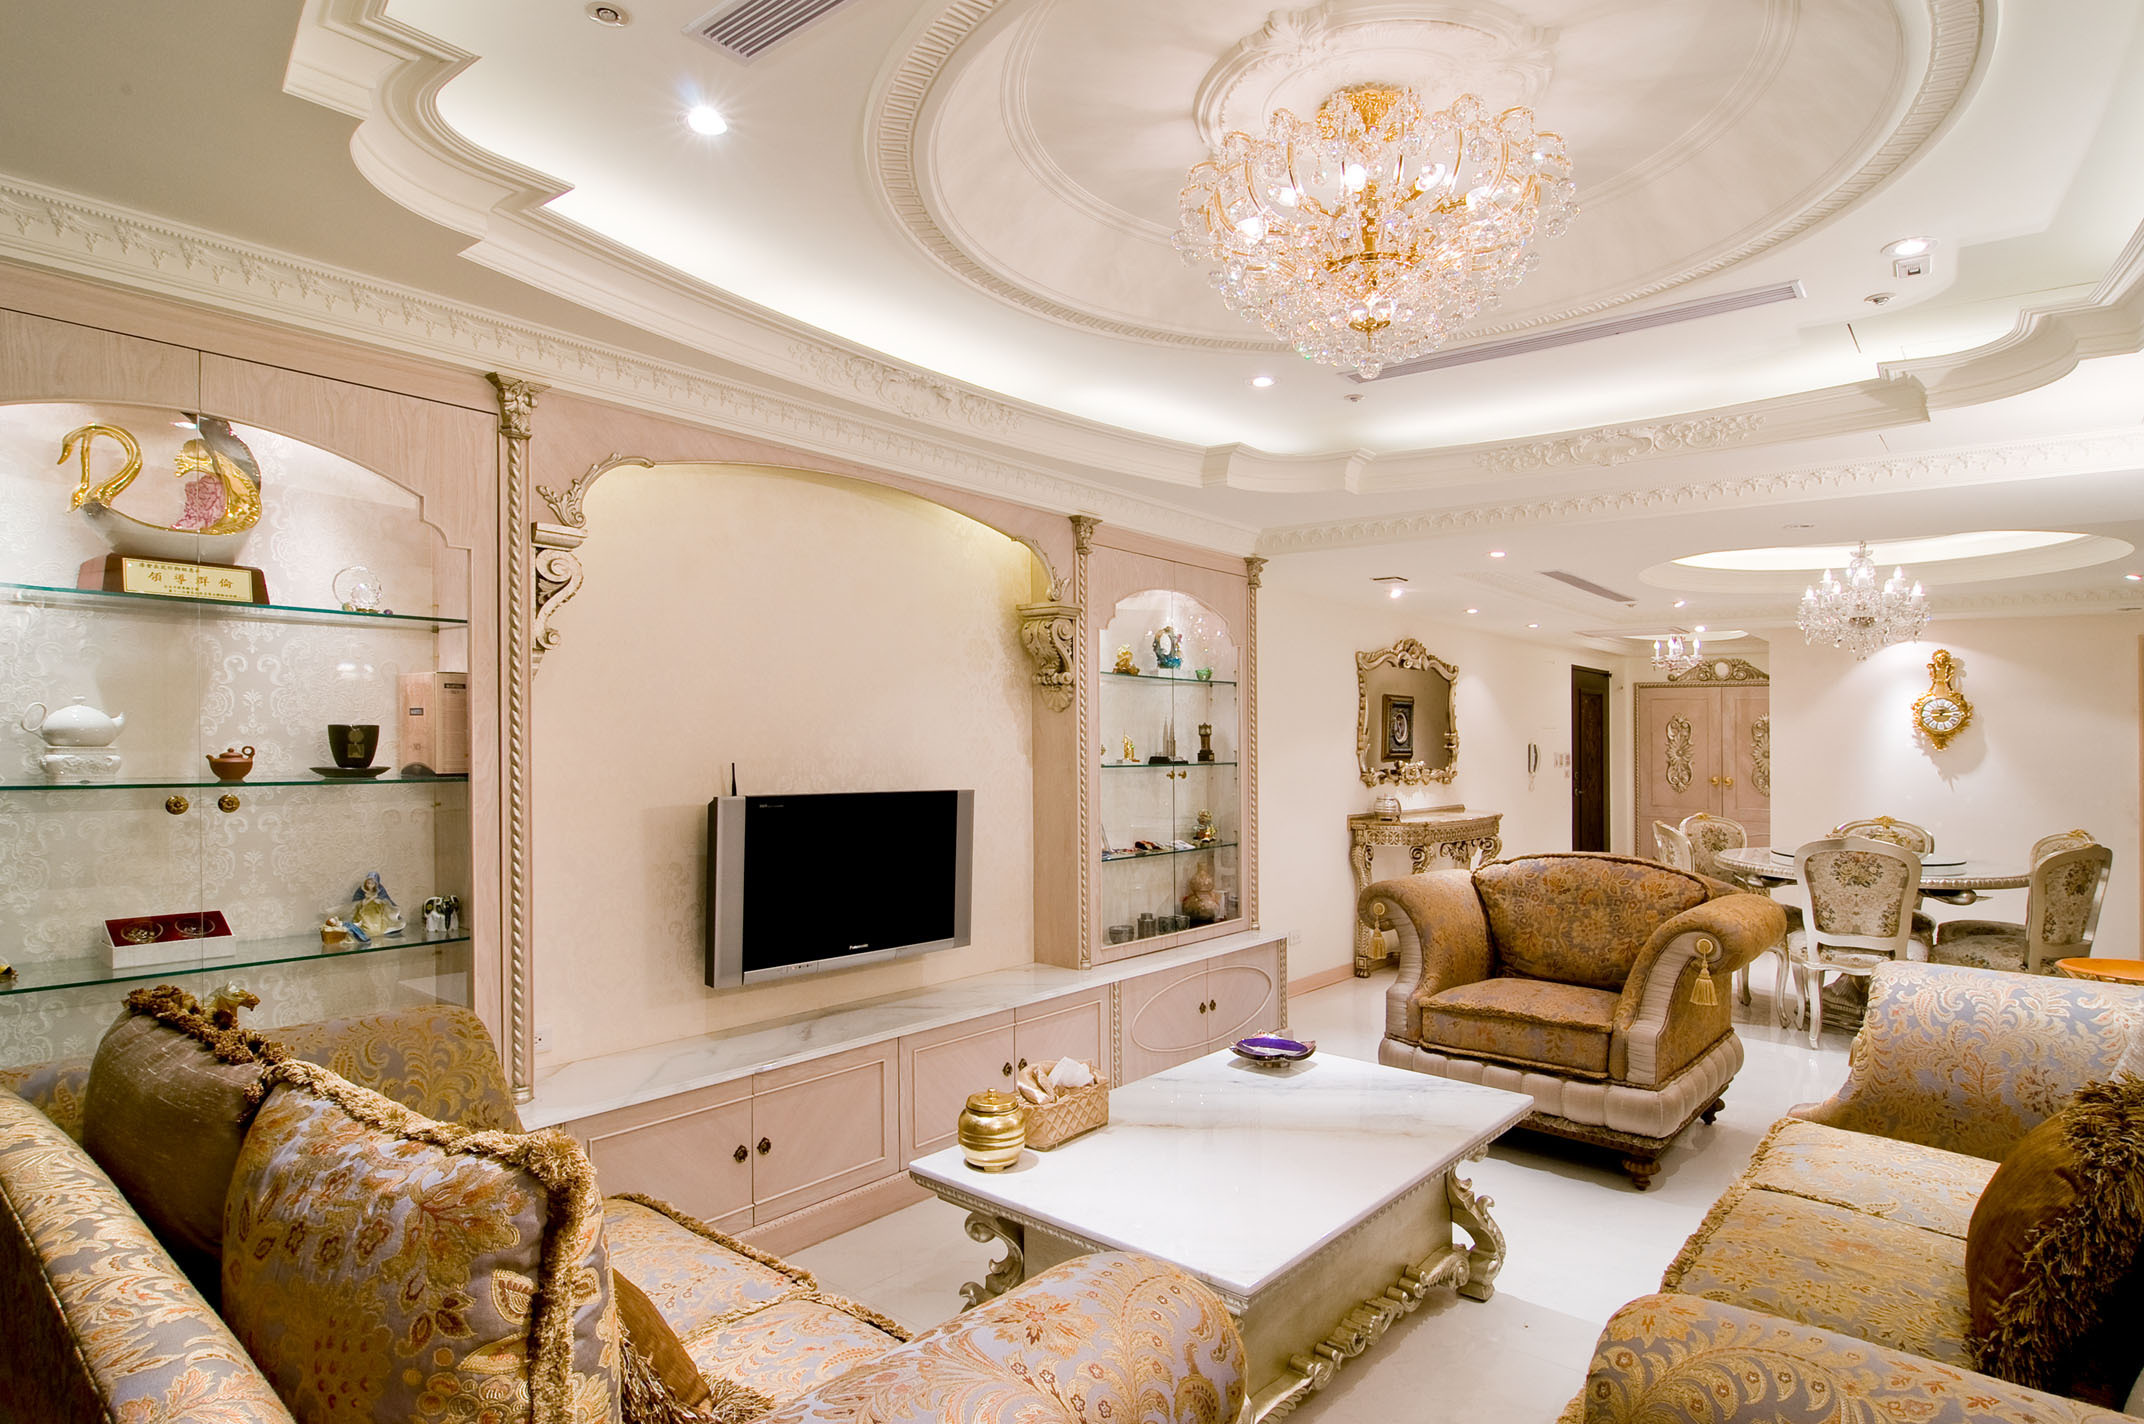 _Beautiful_ceiling_in_the_living_room_091278_